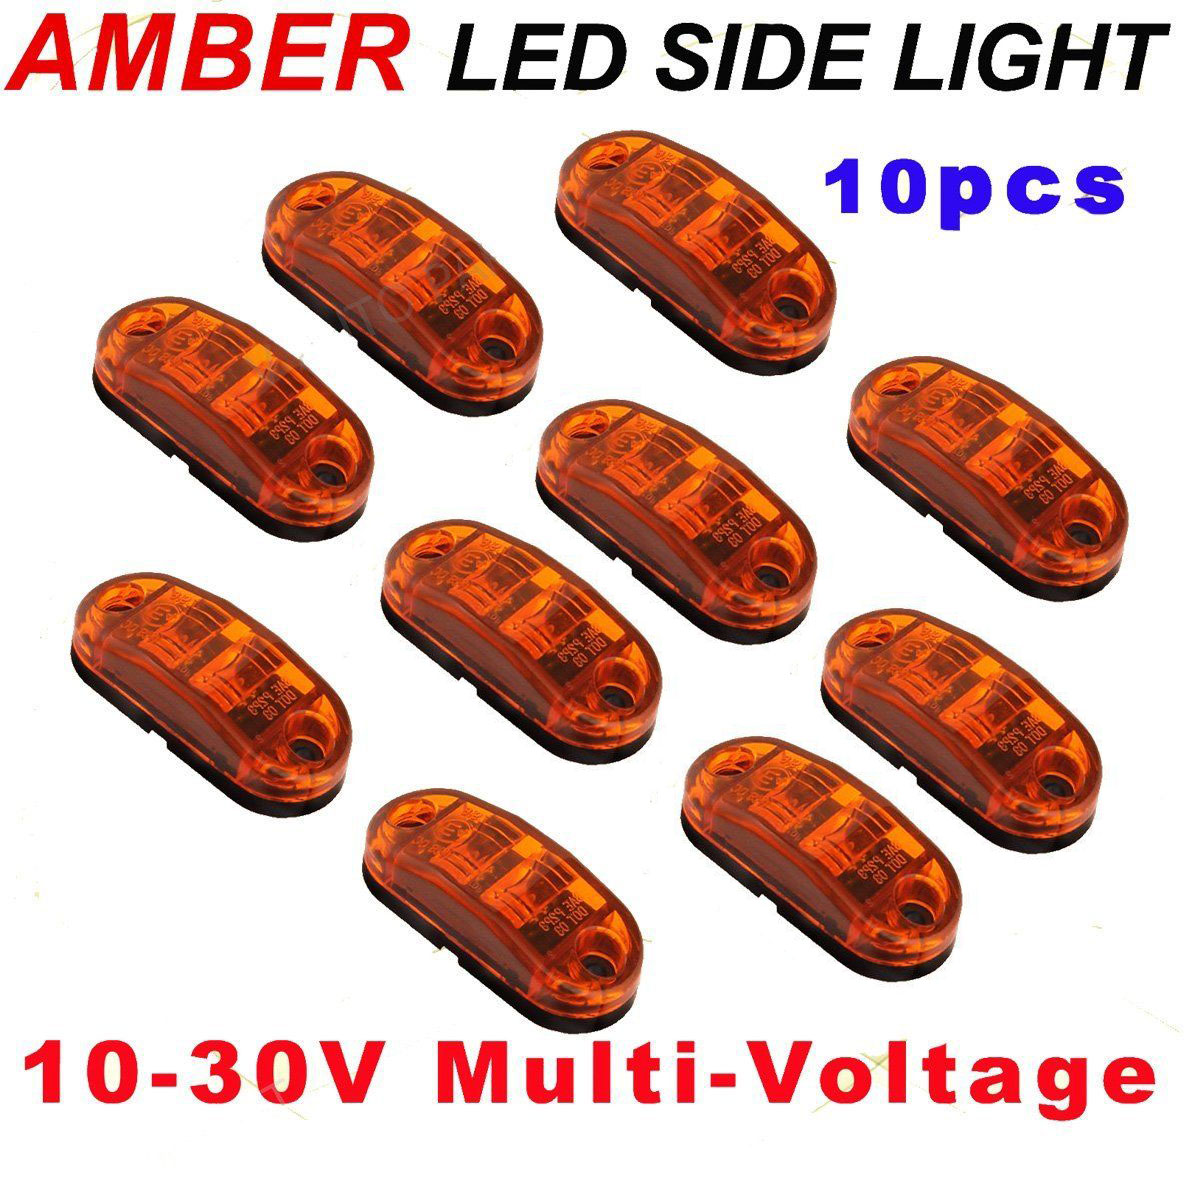 10pcs Yellow Light Trailer Lamps 12V 24V Yellow Side Trailer Truck Turn Light LED Marker Clearance Lamp 20 Pcs Screws